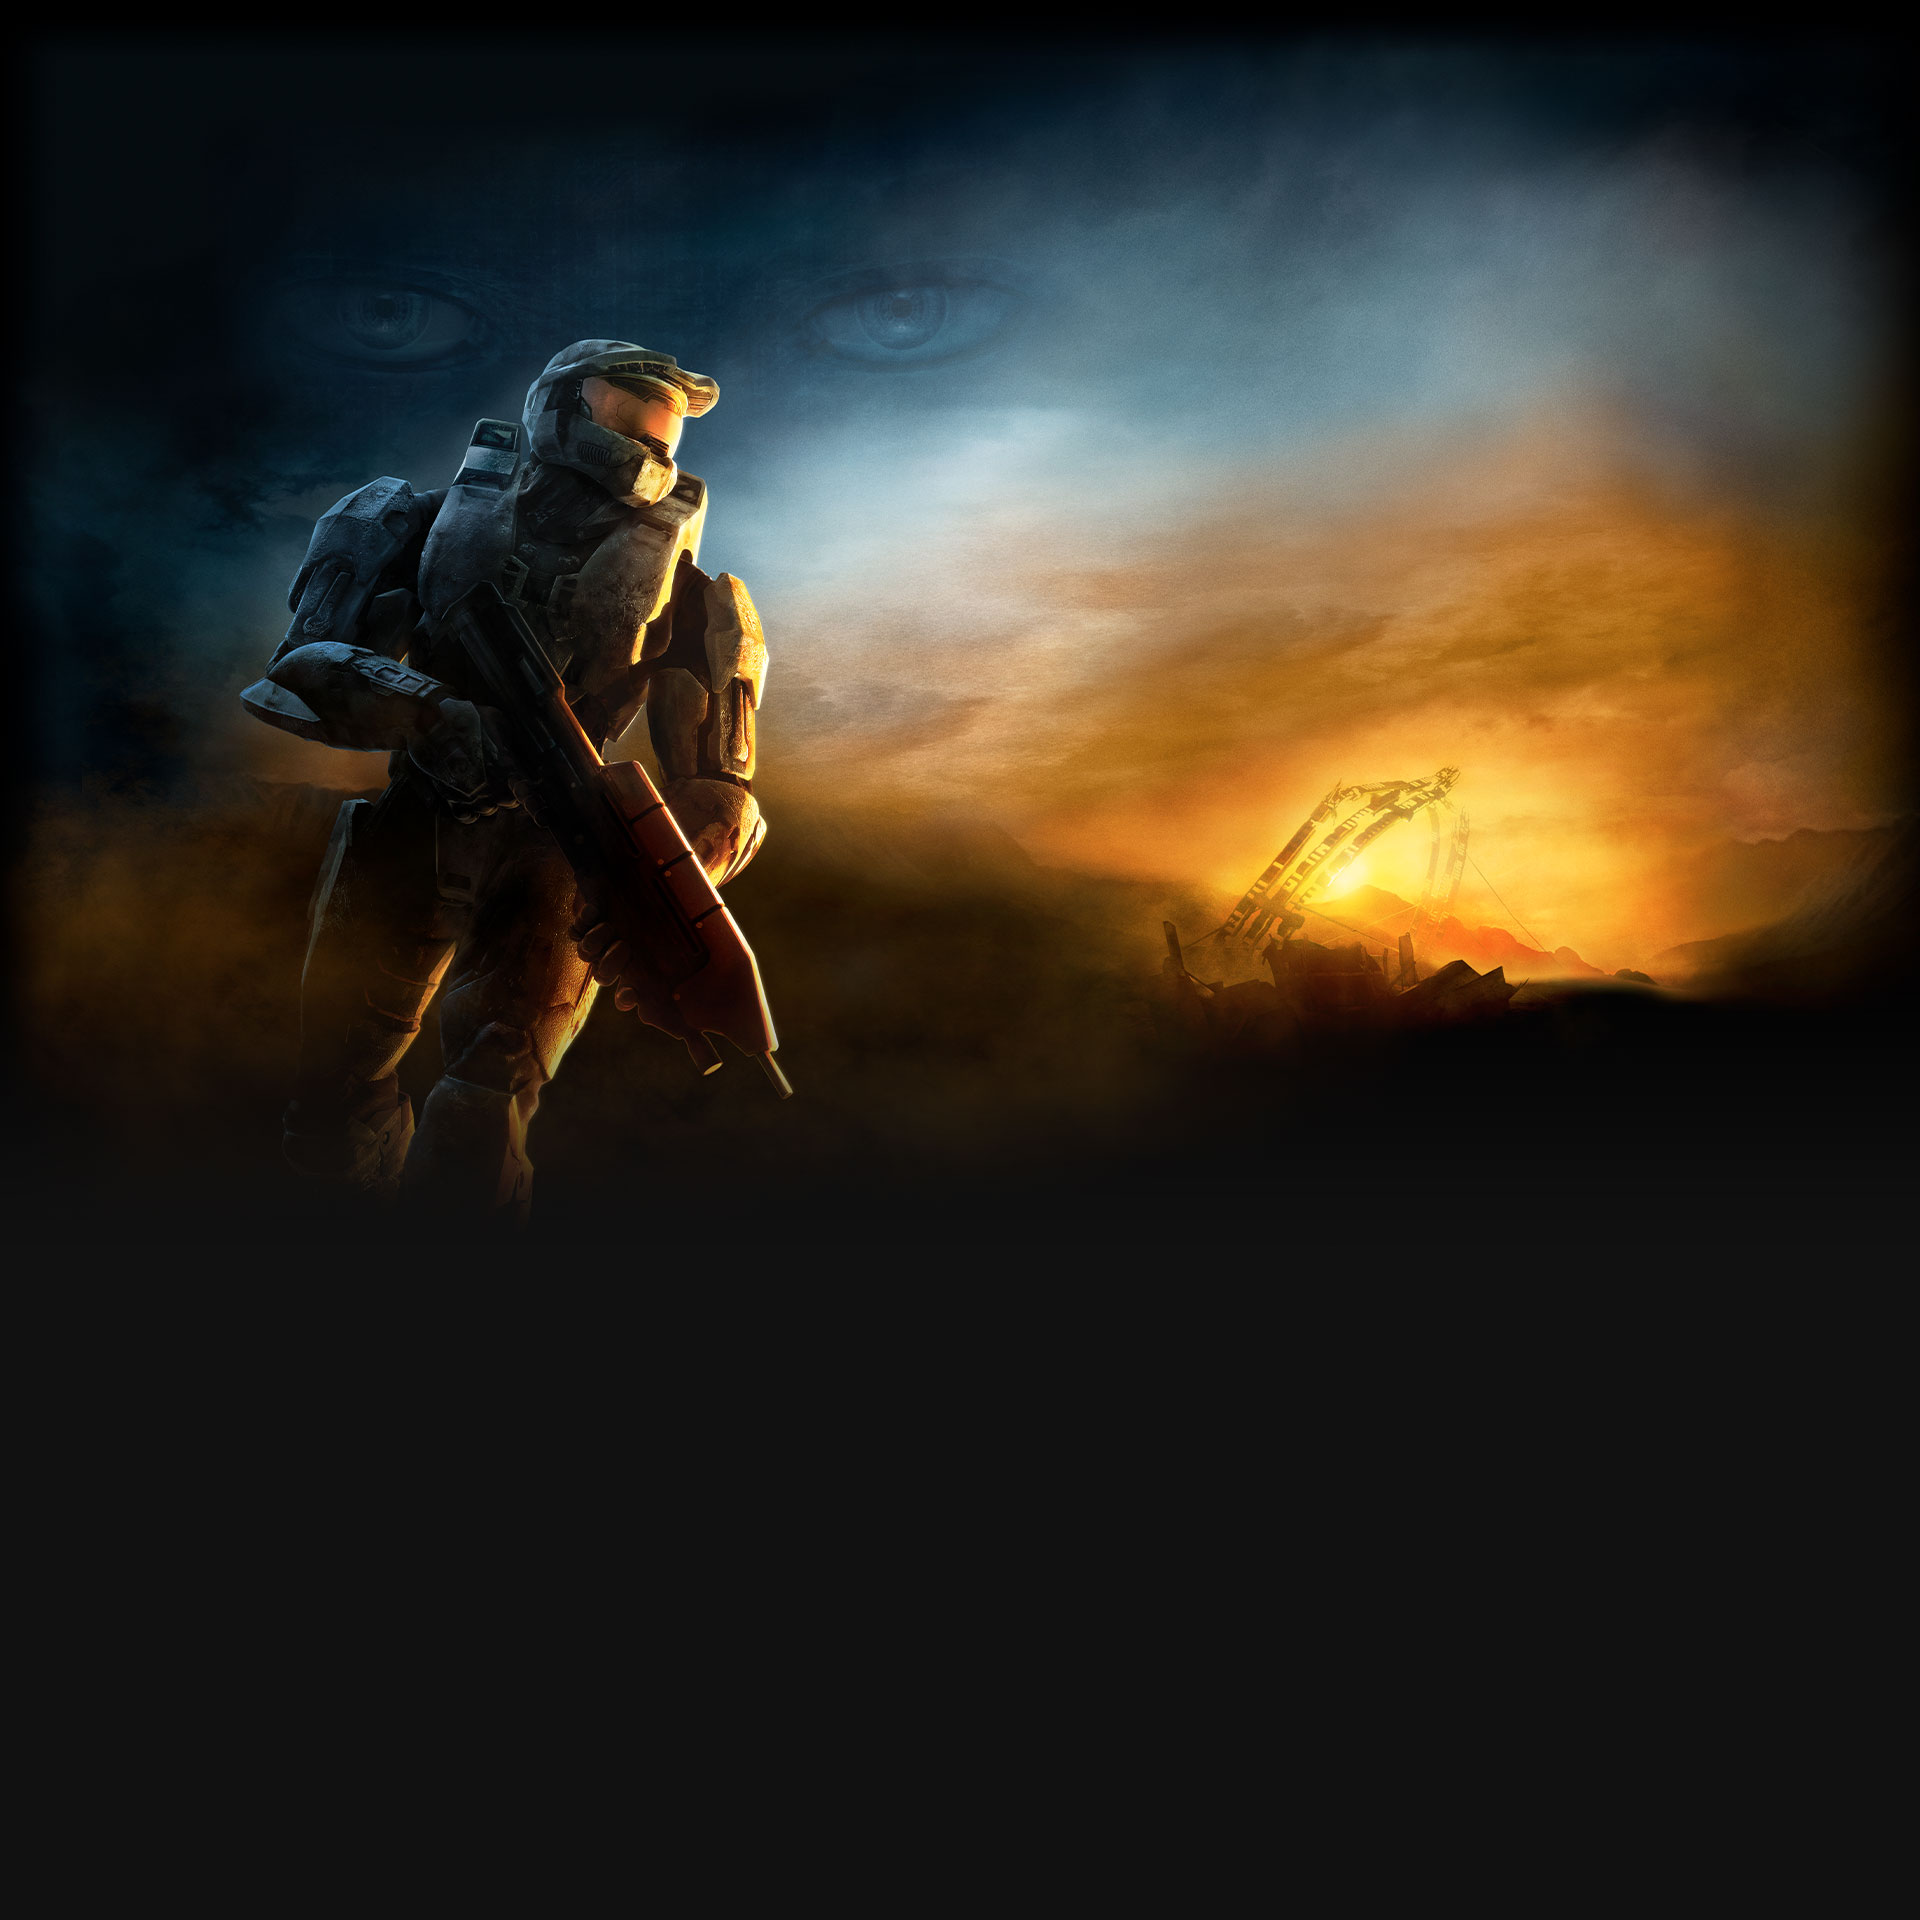 Halo 3, Master chief holds an assault rifle in a desolate area with Cortana's eyes in the sky